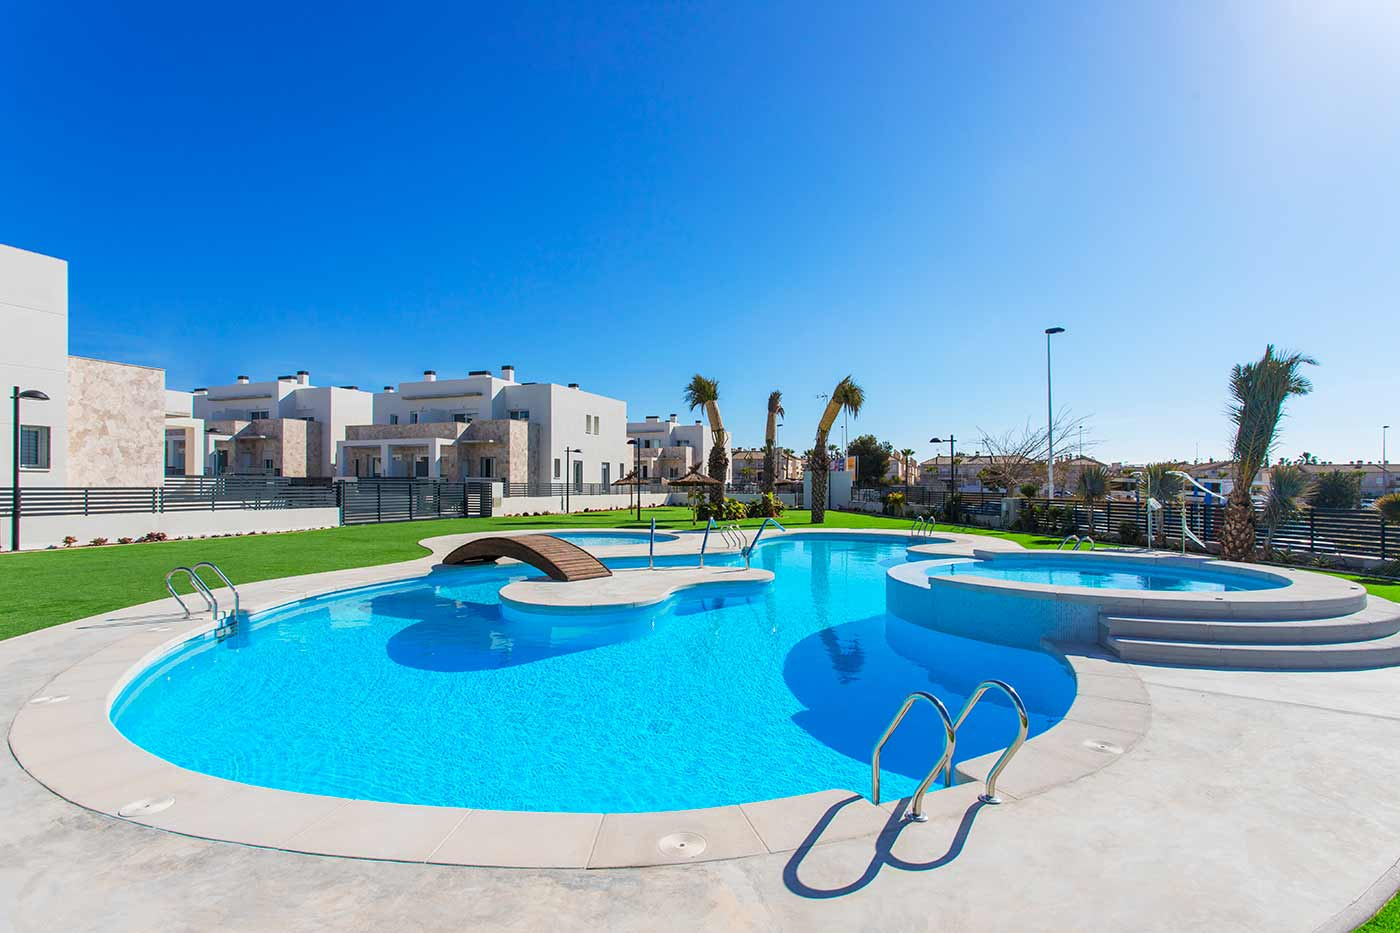 2 bedroom apartment For Sale in Torrevieja - Main Image